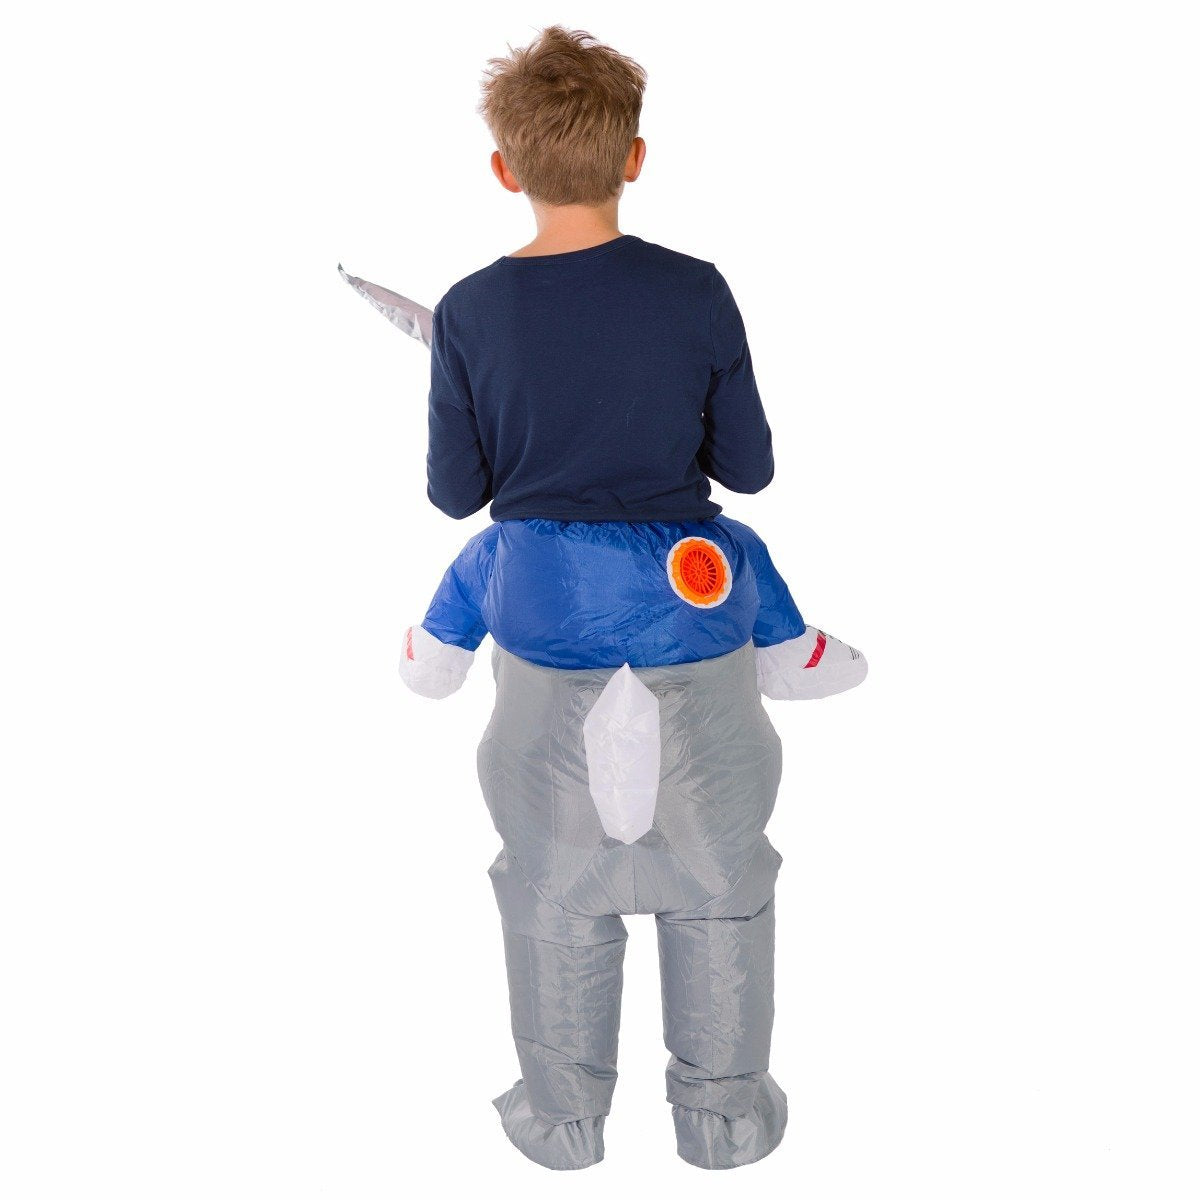 Bodysocks - Kids Inflatable Rabbit Costume